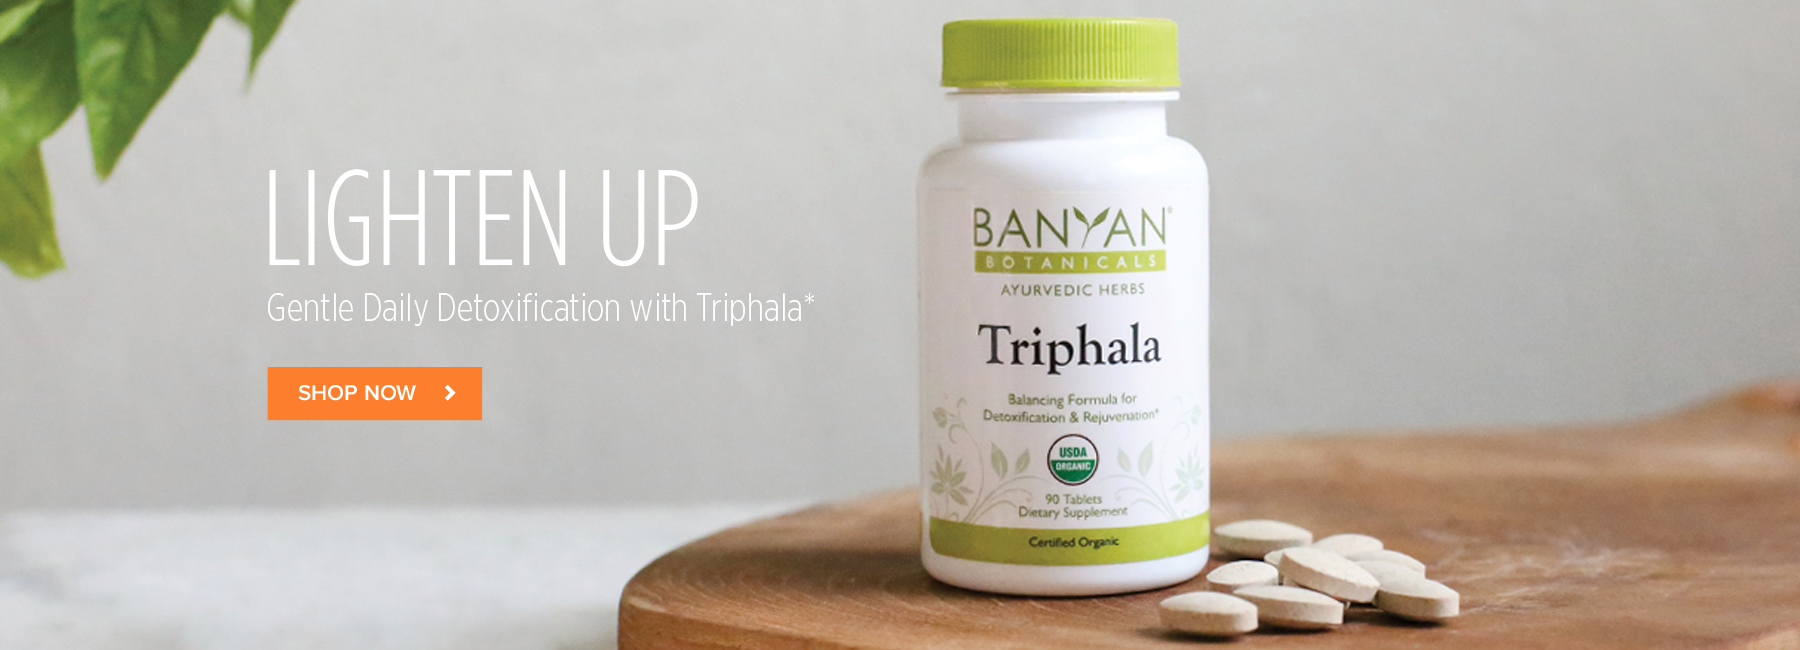 Lighten Up! Gentle Daily Detoxification with Triphala*